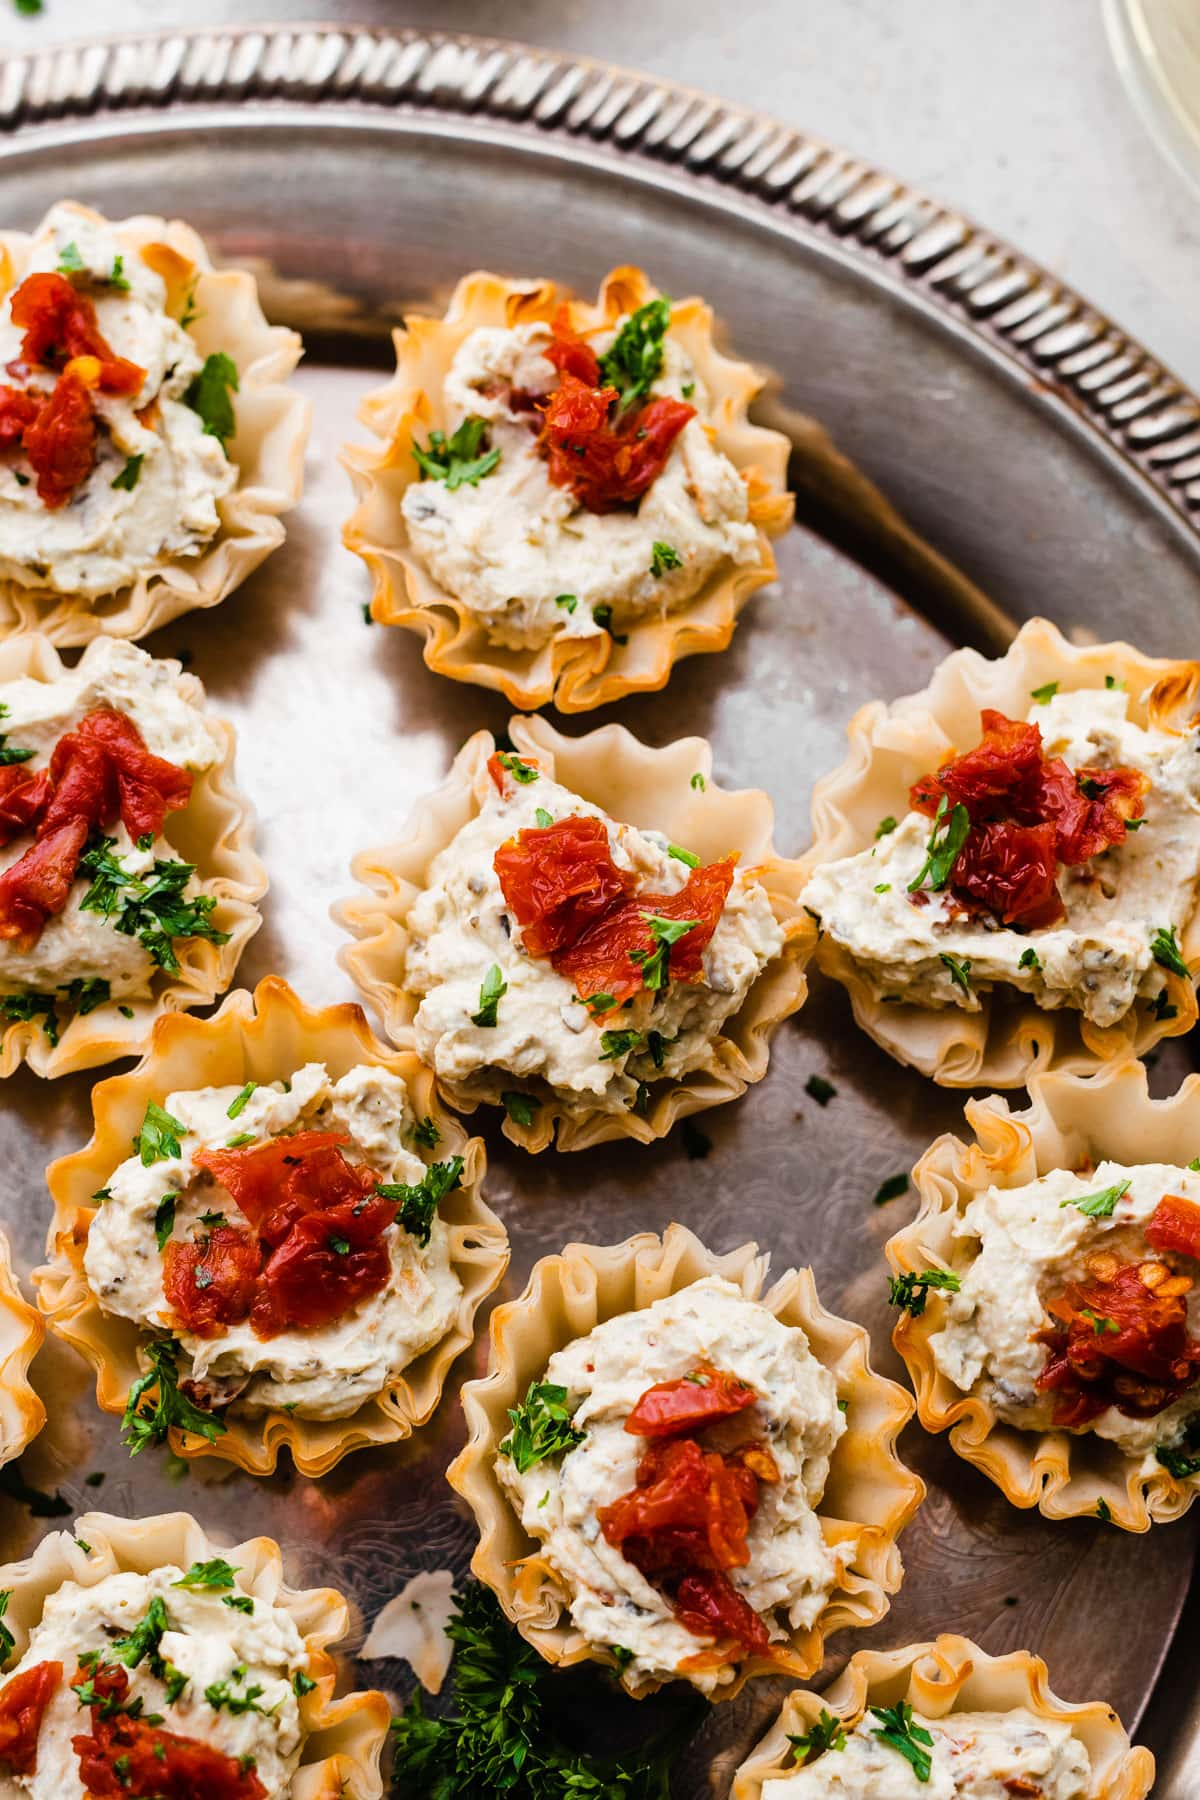 Our favorite easy appetizer: Sun Dried Tomato Pesto Bites. Creamy cheese and pesto filling with sun dried tomatoes on top.